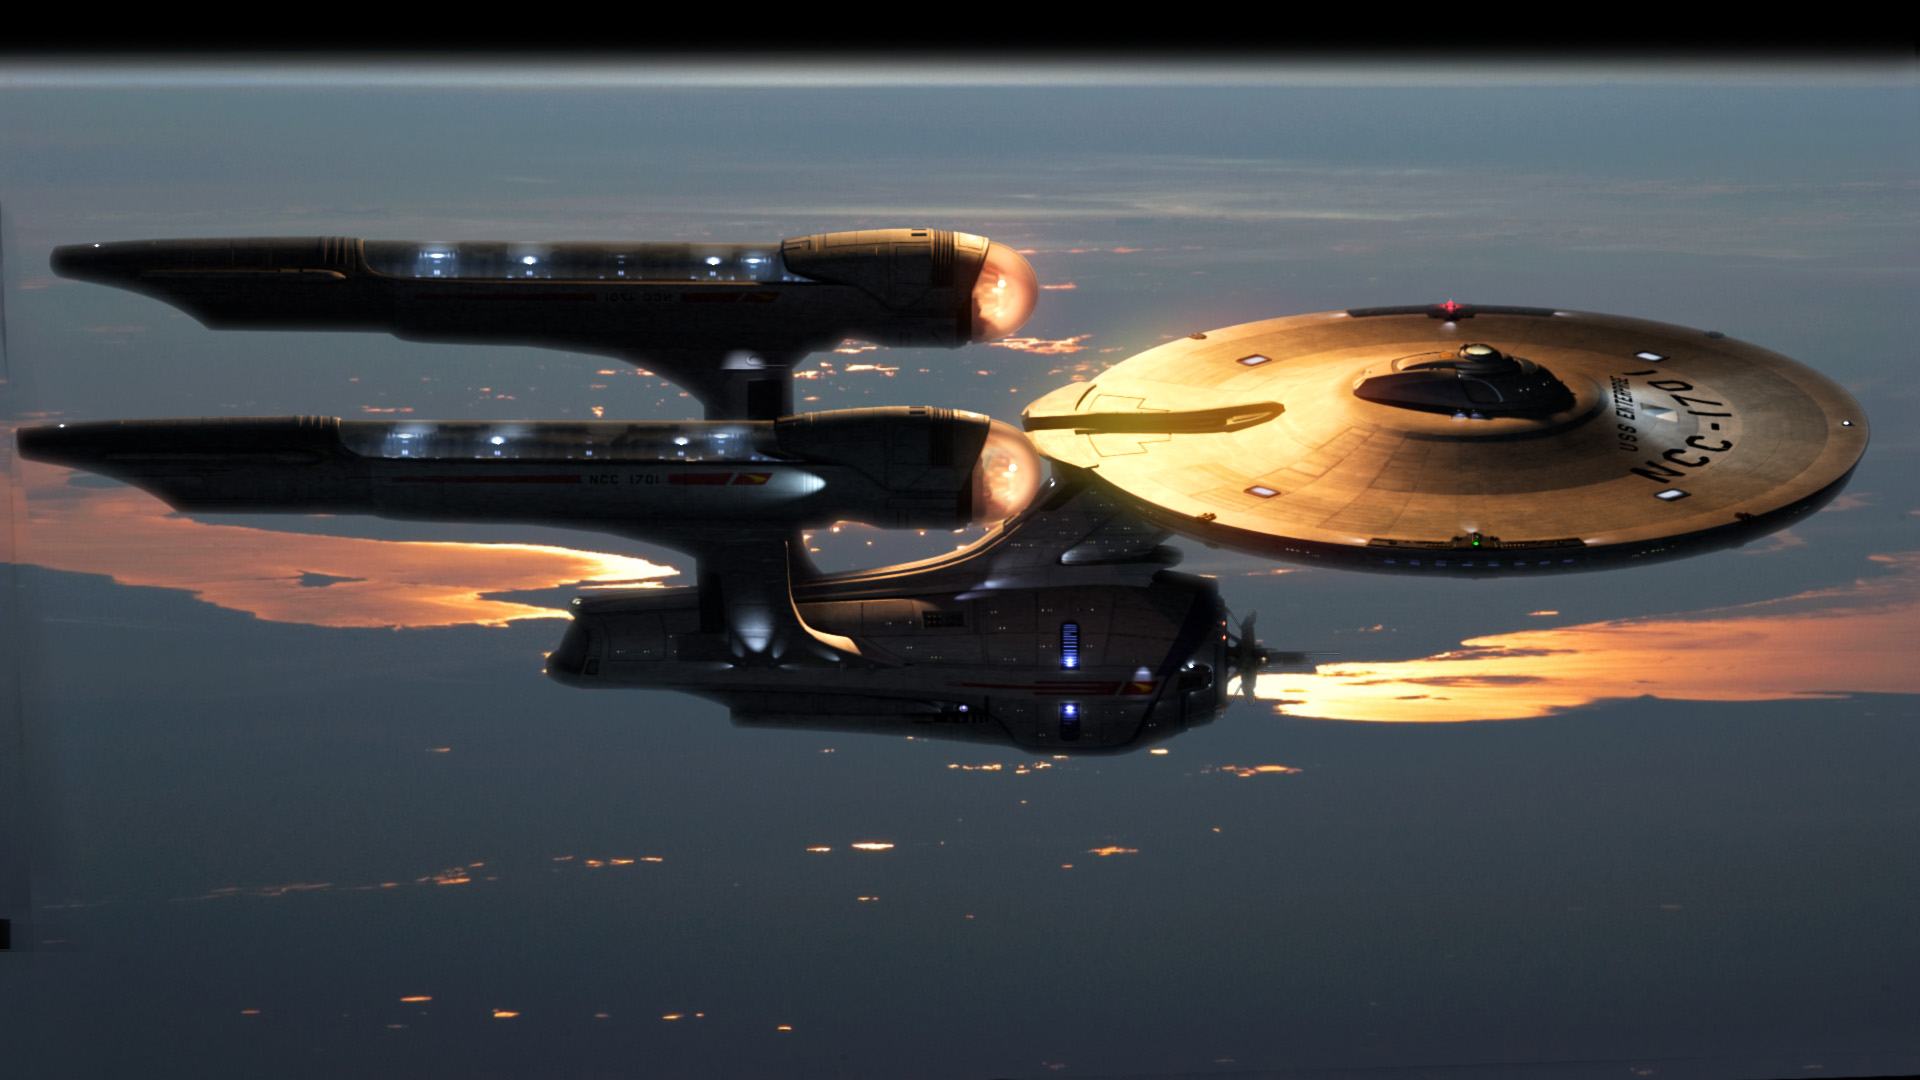 hd wallpaper enterprise star trek wallpapers55com   Best Wallpapers 1920x1080